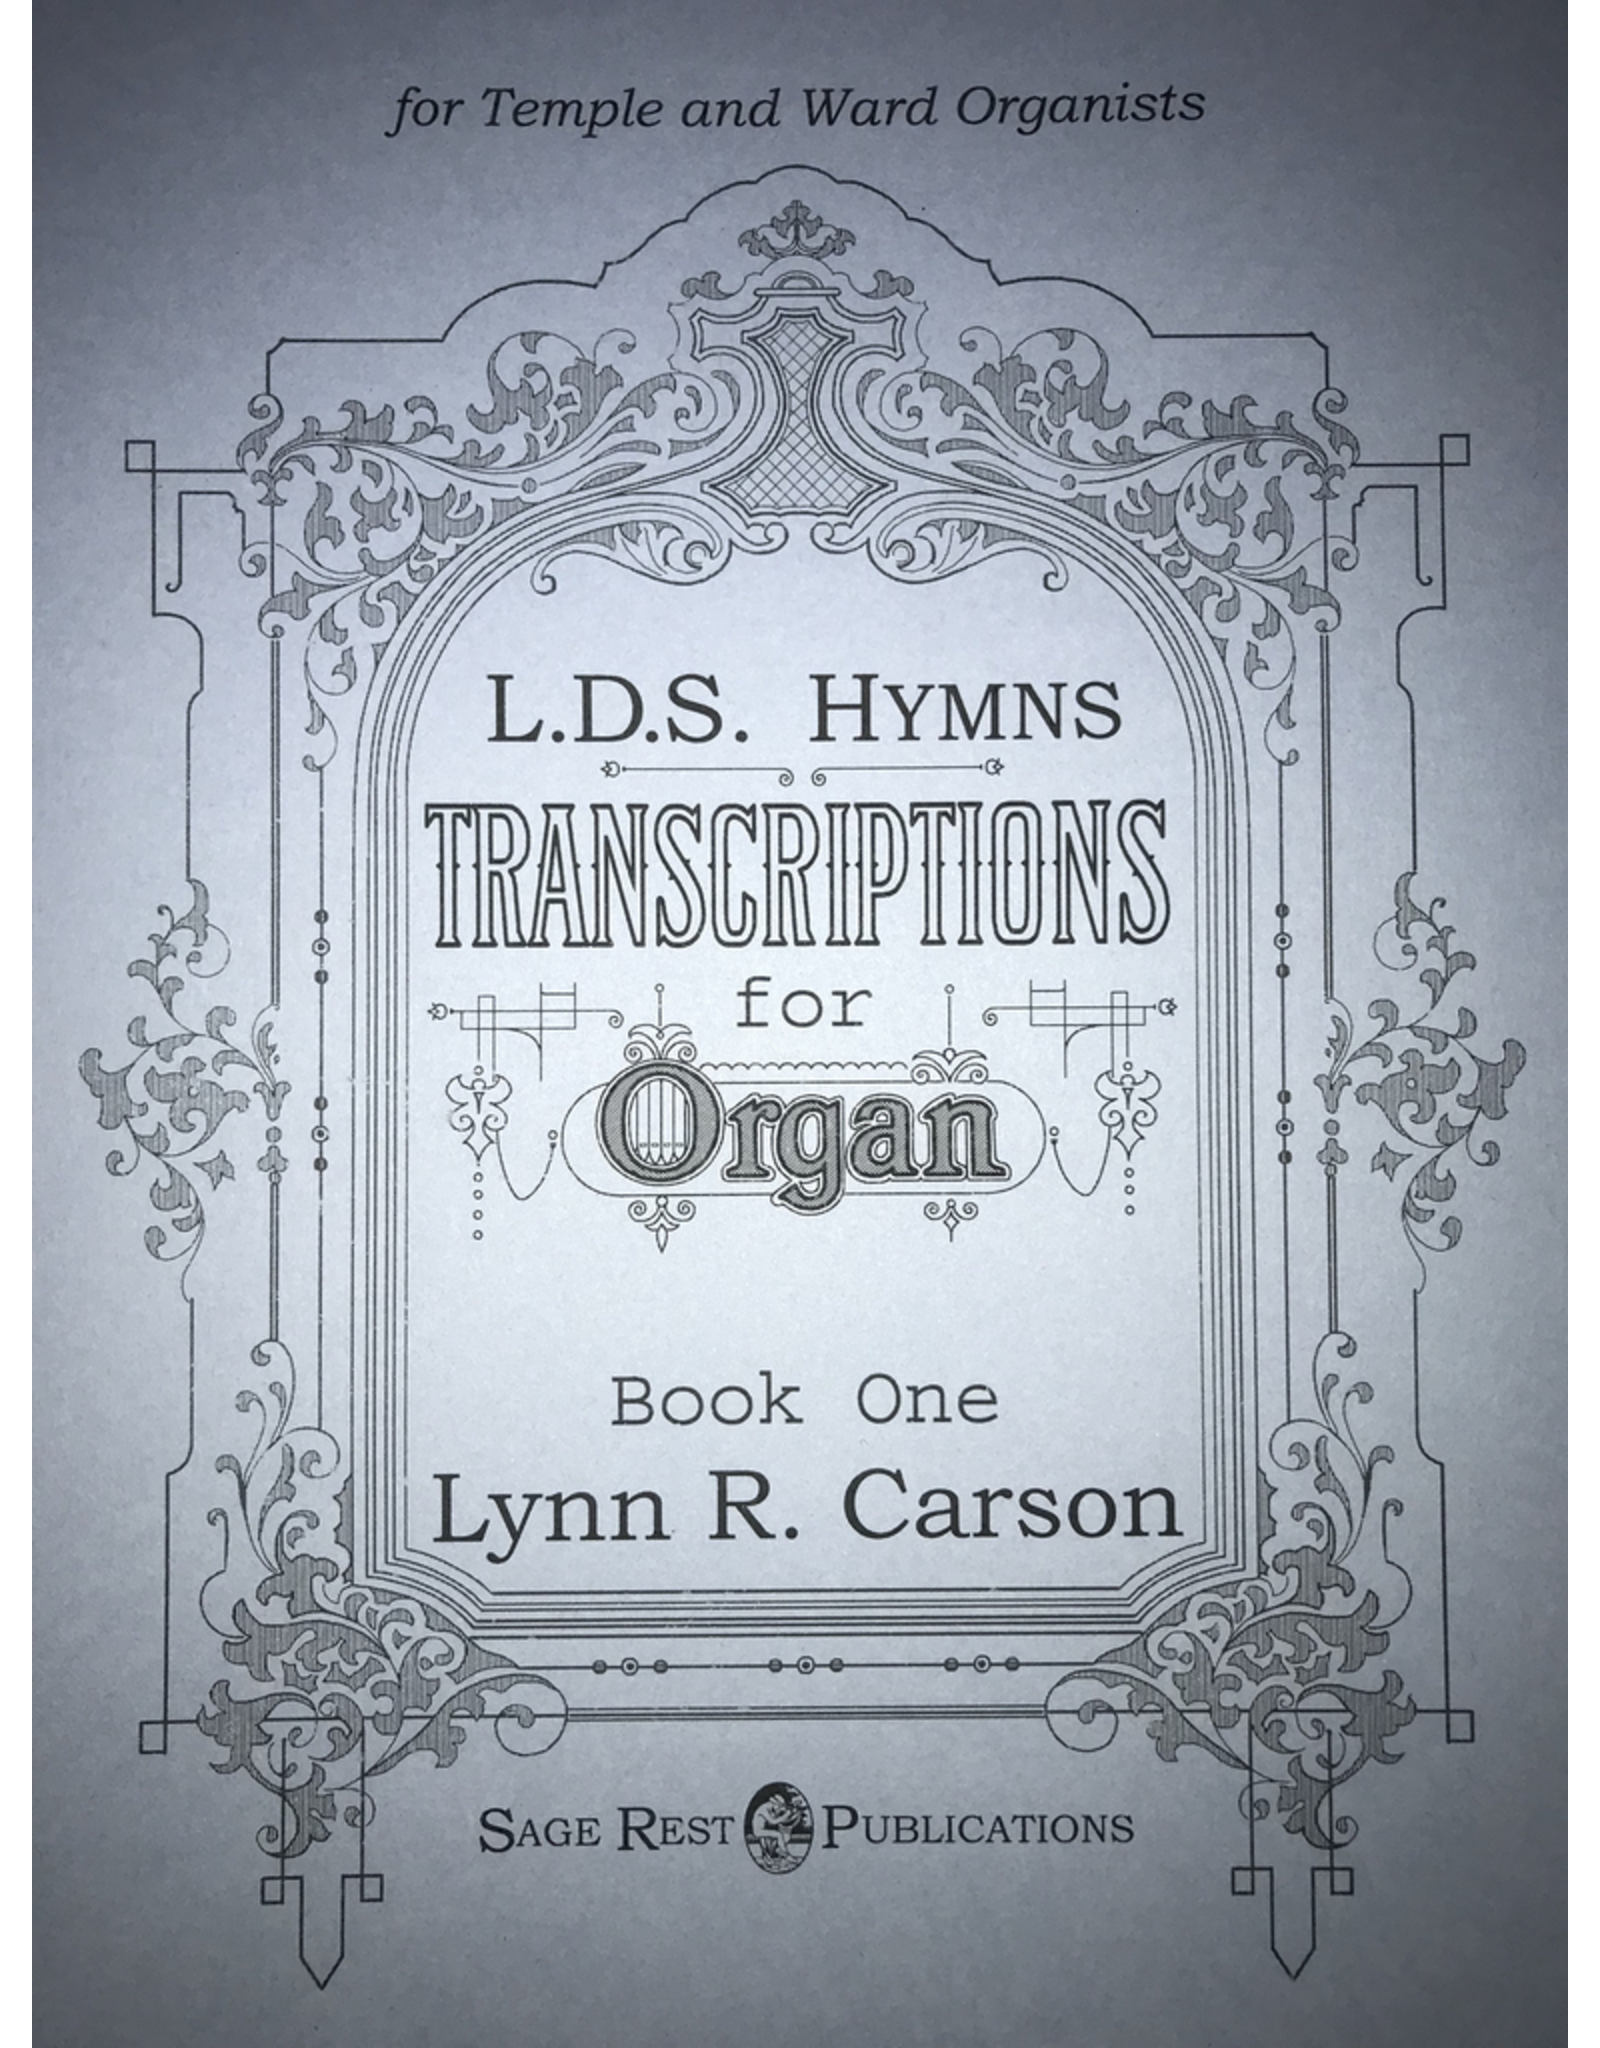 Sage Rest Publications Organ Arrangements Volume 1 for Temple and Ward Organists by Lynn R. Carson